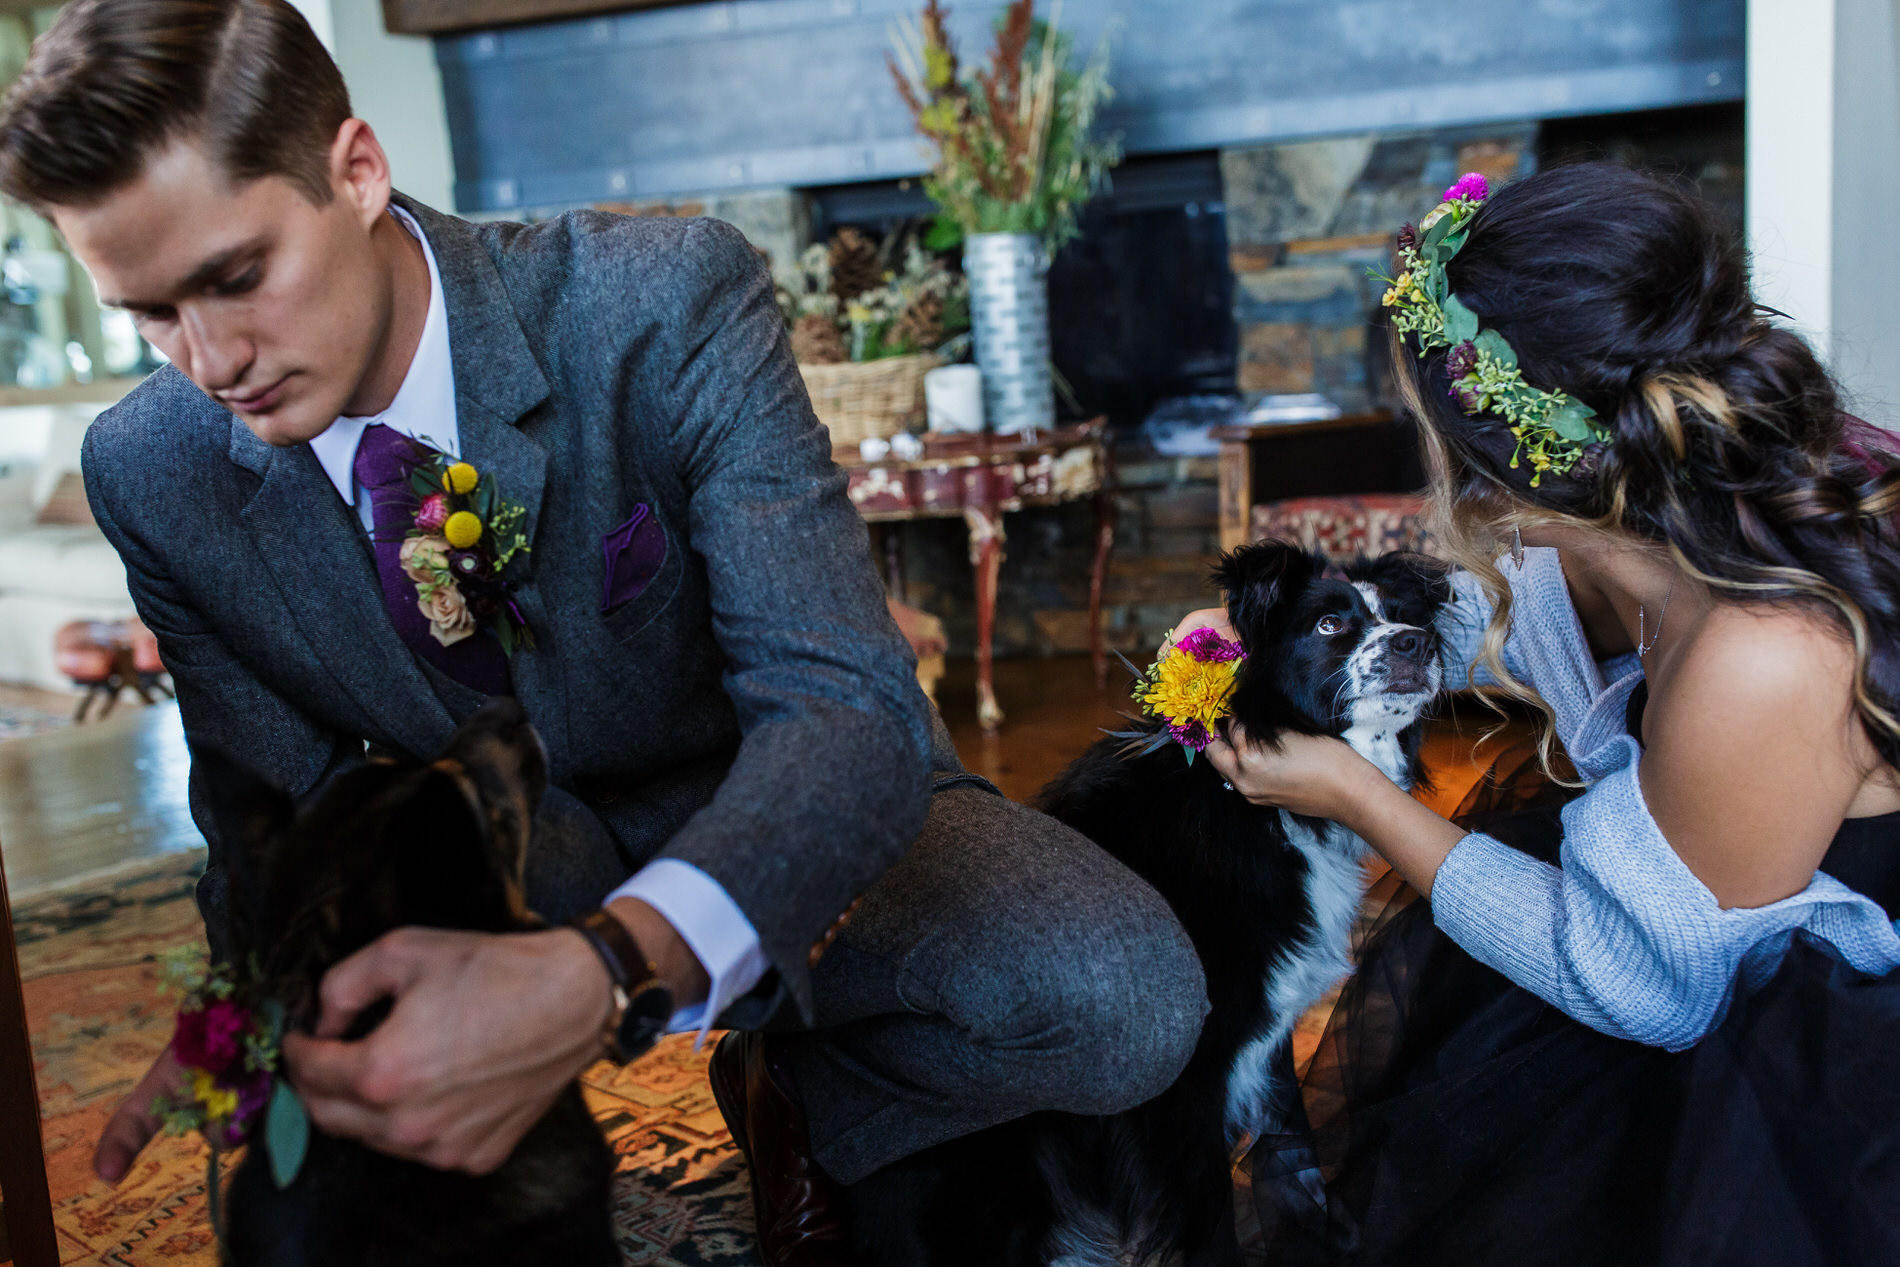 Tahoe Elopement Image | The wedding couple's two dogs were an important part of the wedding day